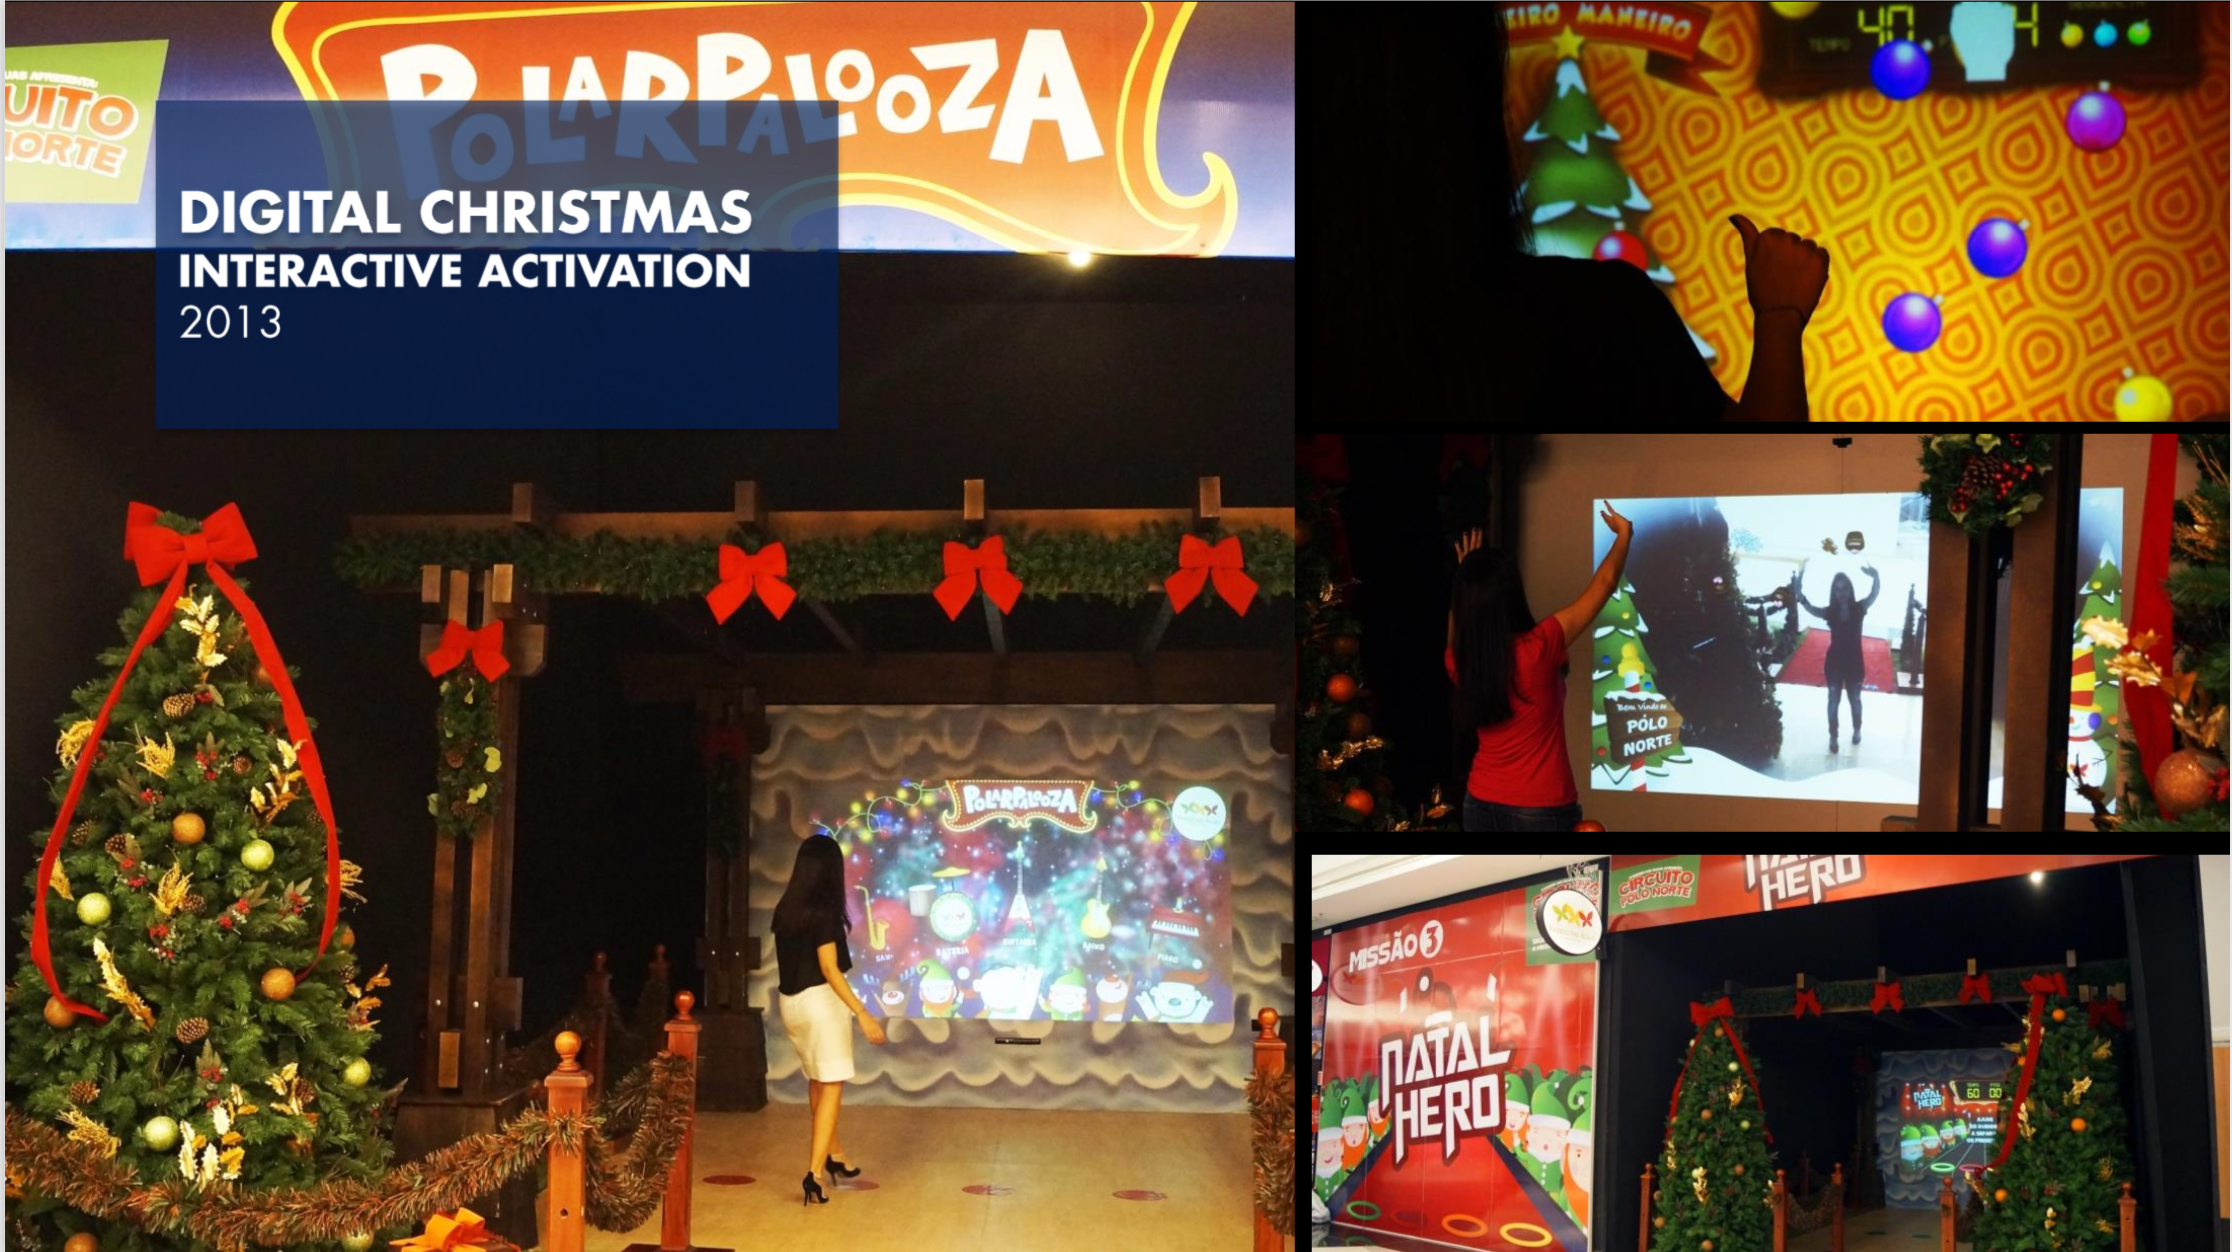 Digital Christmas Interactive Exhibition